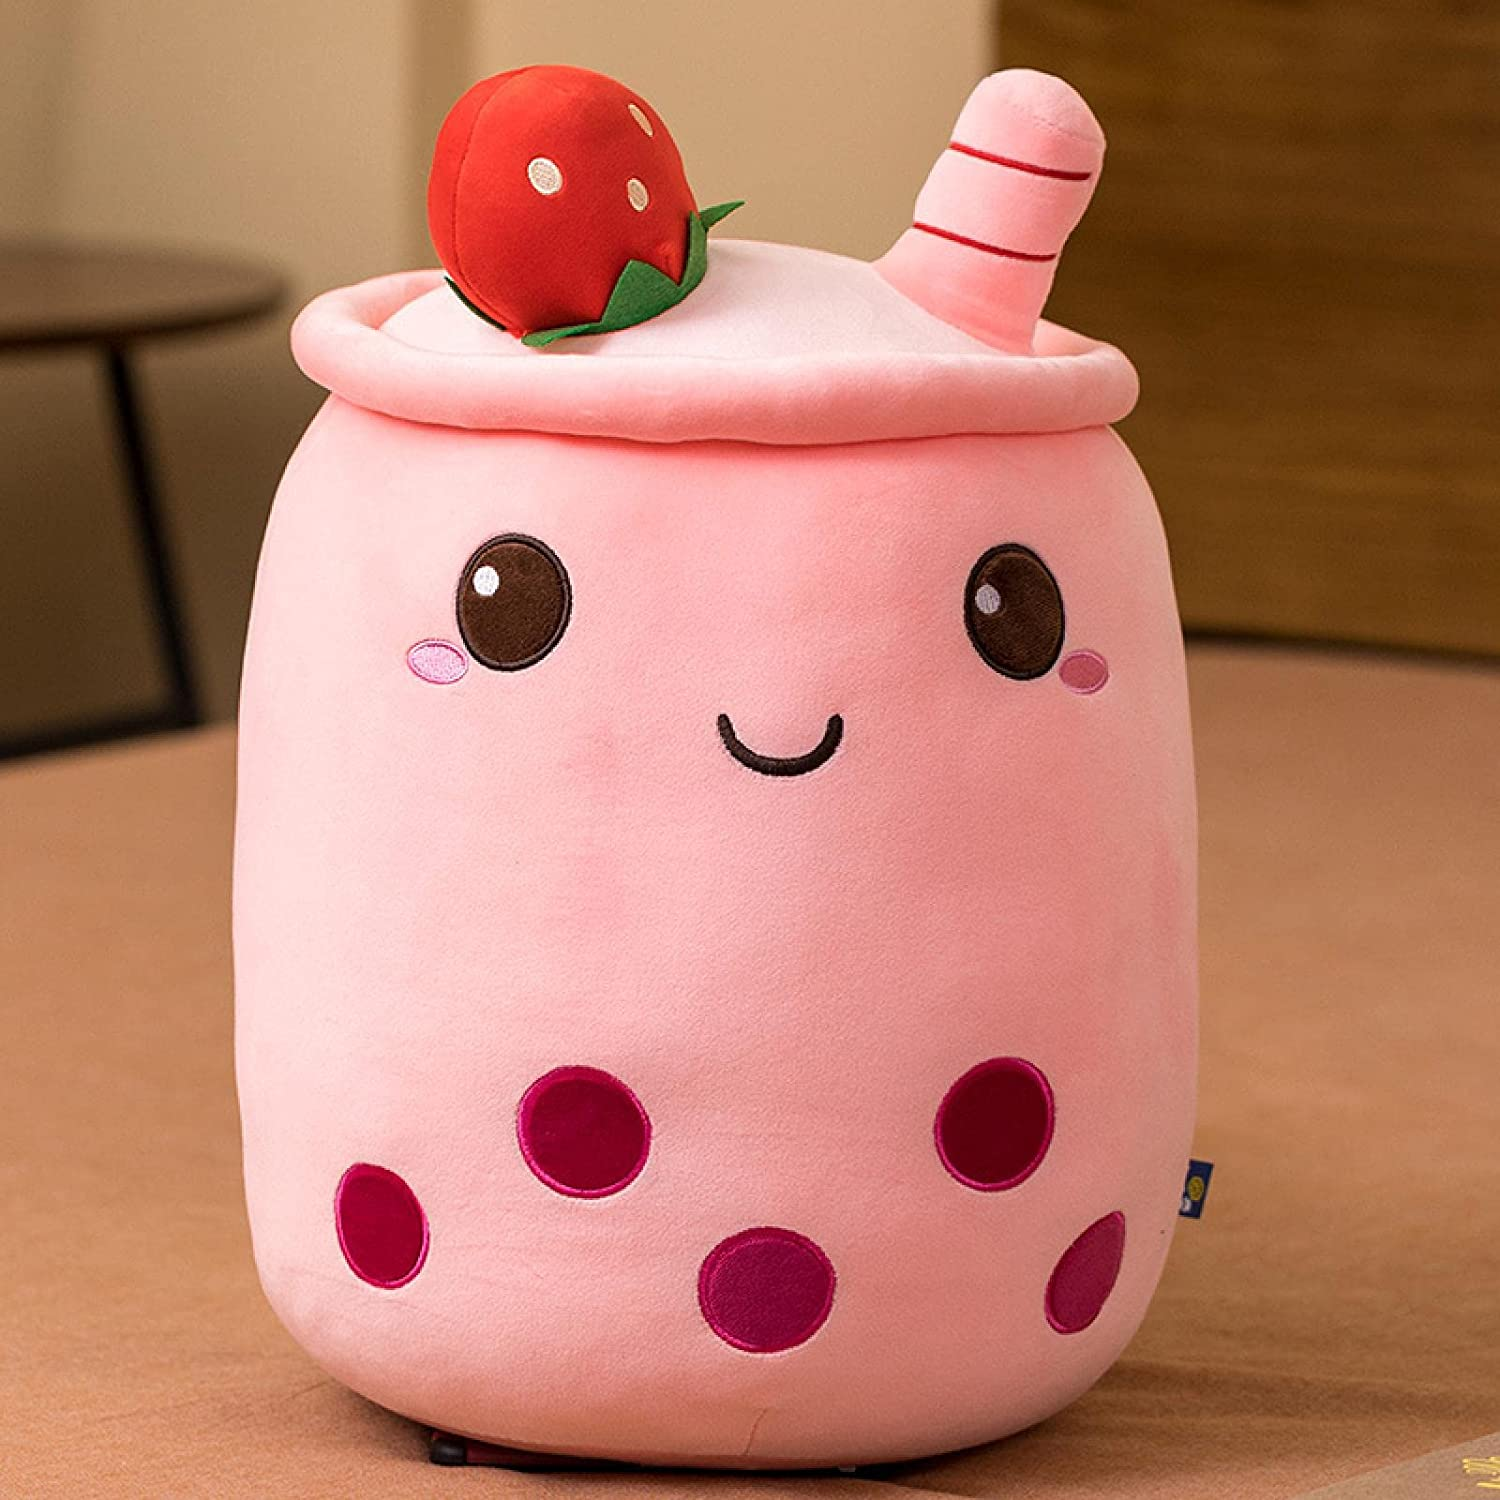 Cartoon Bubble Tea Plush Discount mail order Pillow Figurine Free Shipping New Boba Cup Toy